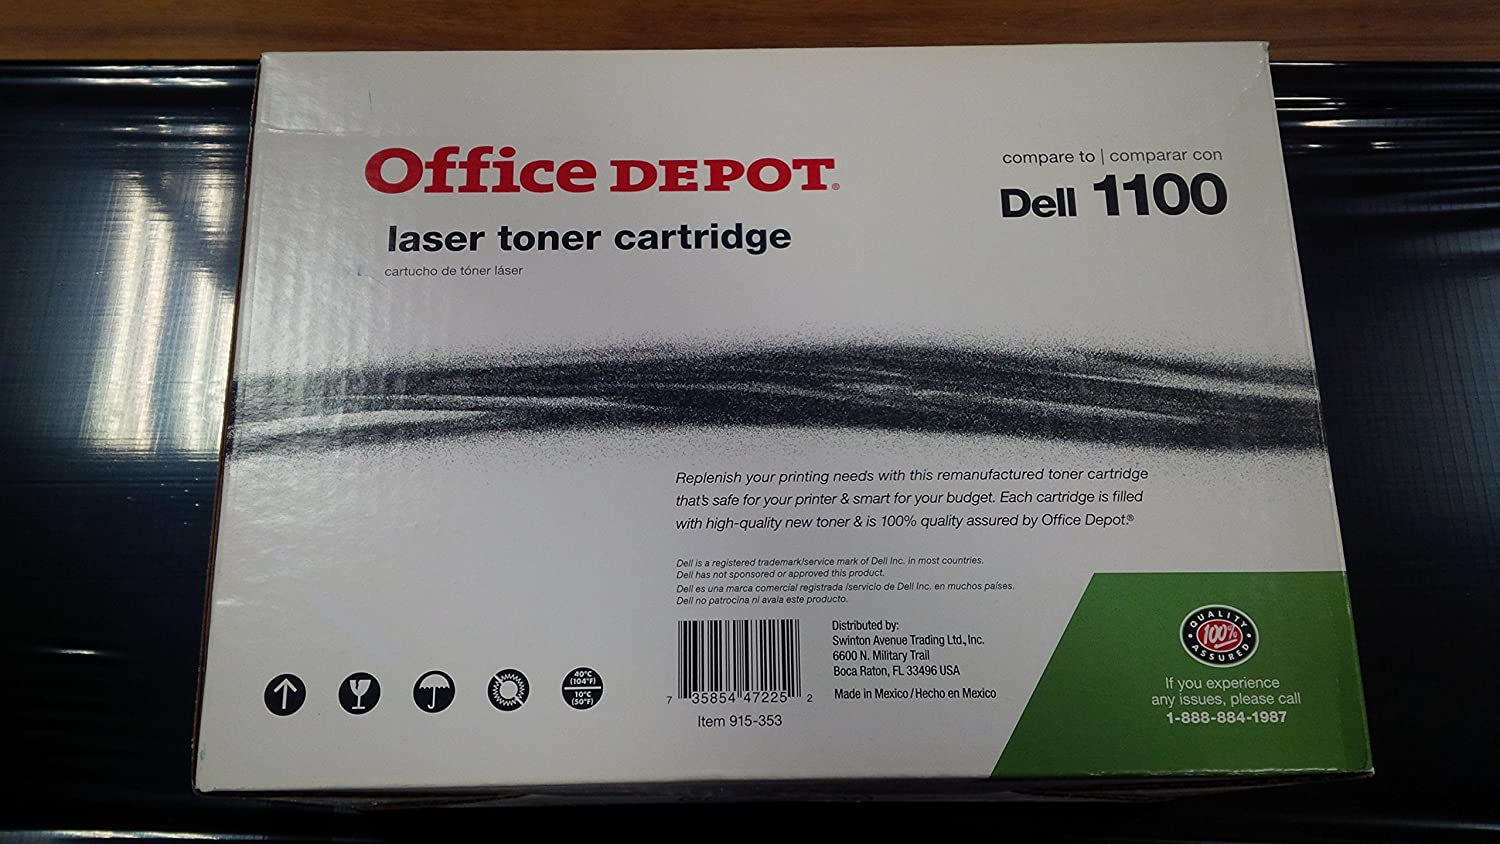 Office depot services register new product - Amazon Com Compatible Dell 310 6640 Toner Cartridge For Use In Dell 1100 Laser Printer Office Products